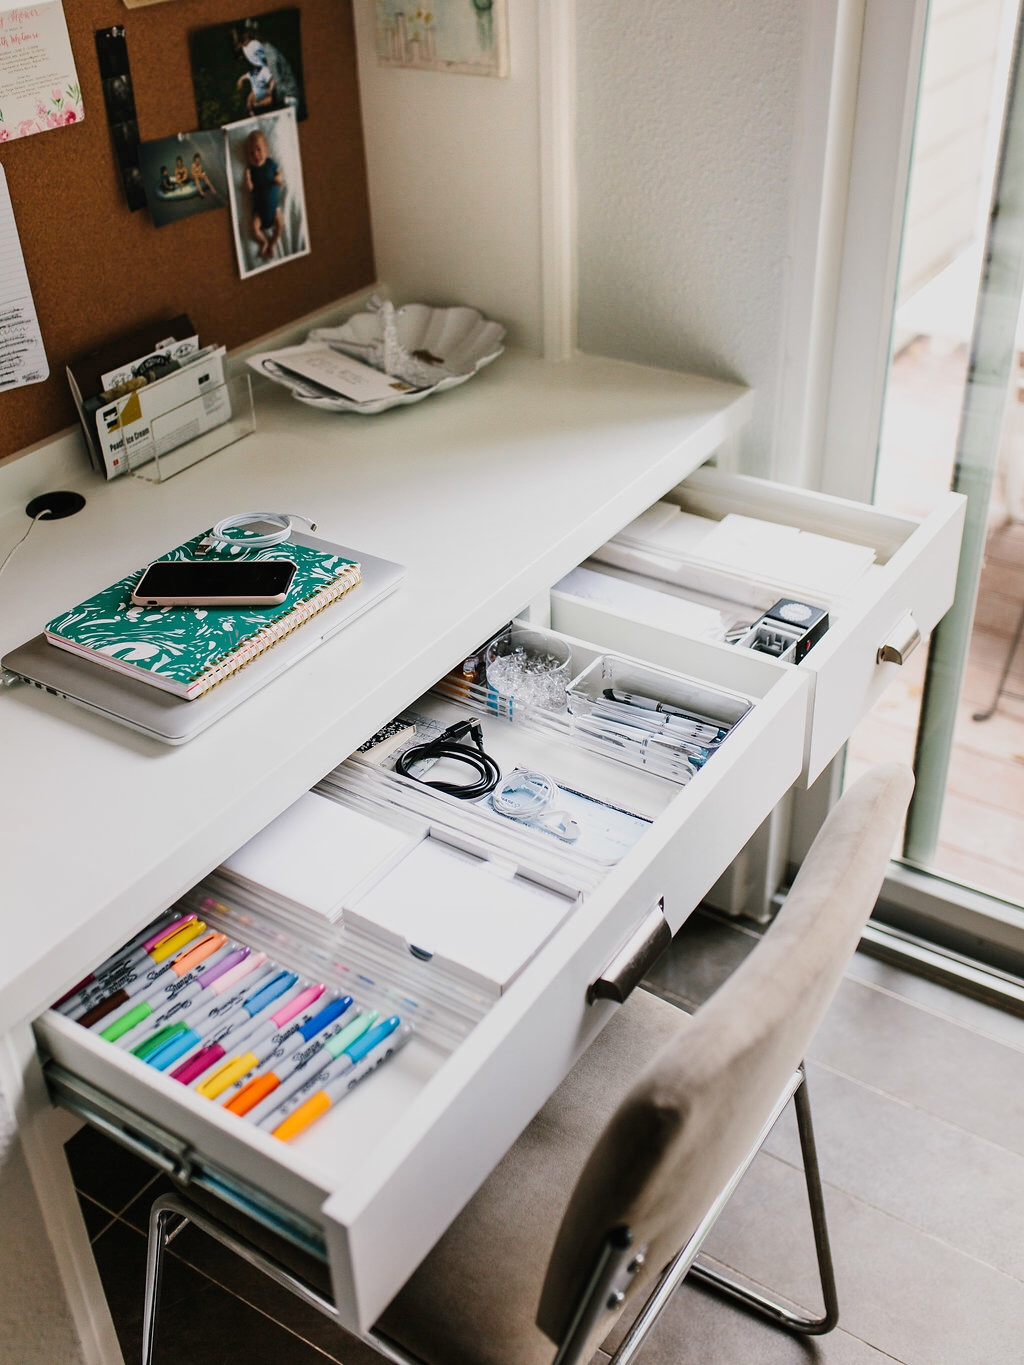 One Thing That My Very First Styling Boss Impressed Upon Me Was The Need To Wrap Up Day With A Tidy Desk And Working E